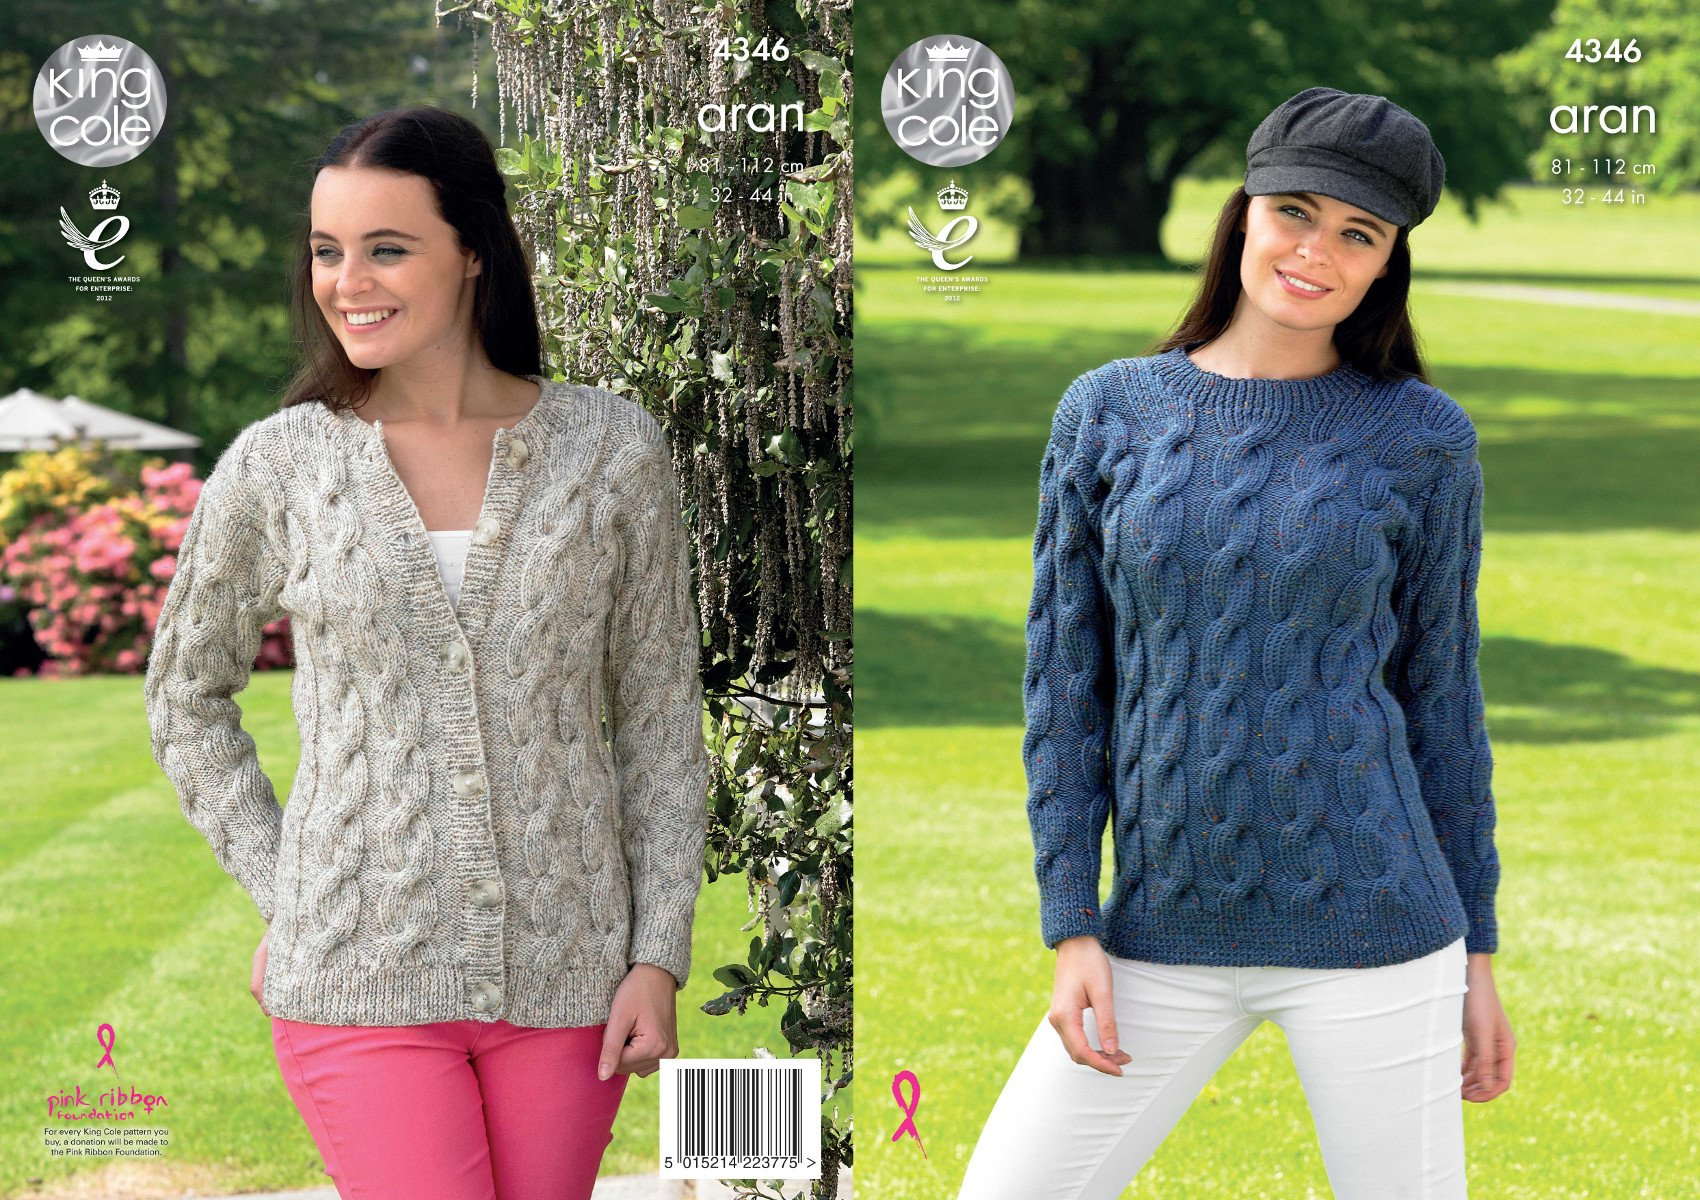 Aran Wool Cardigan Knitting Patterns: Amazon.co.uk